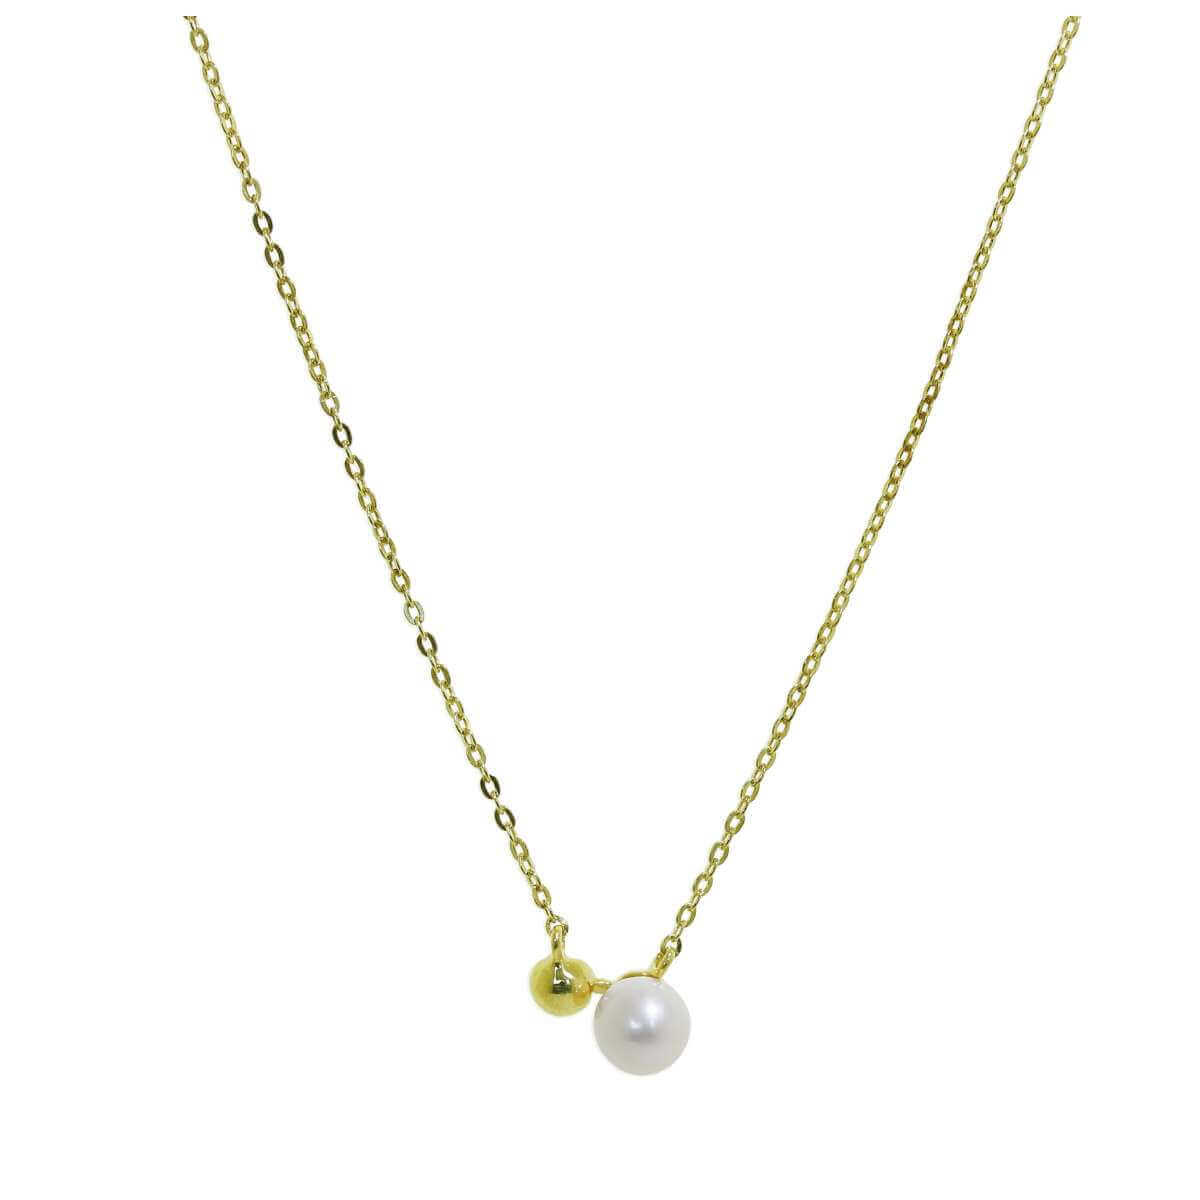 9ct Gold Ball Freshwater Pearl Necklace